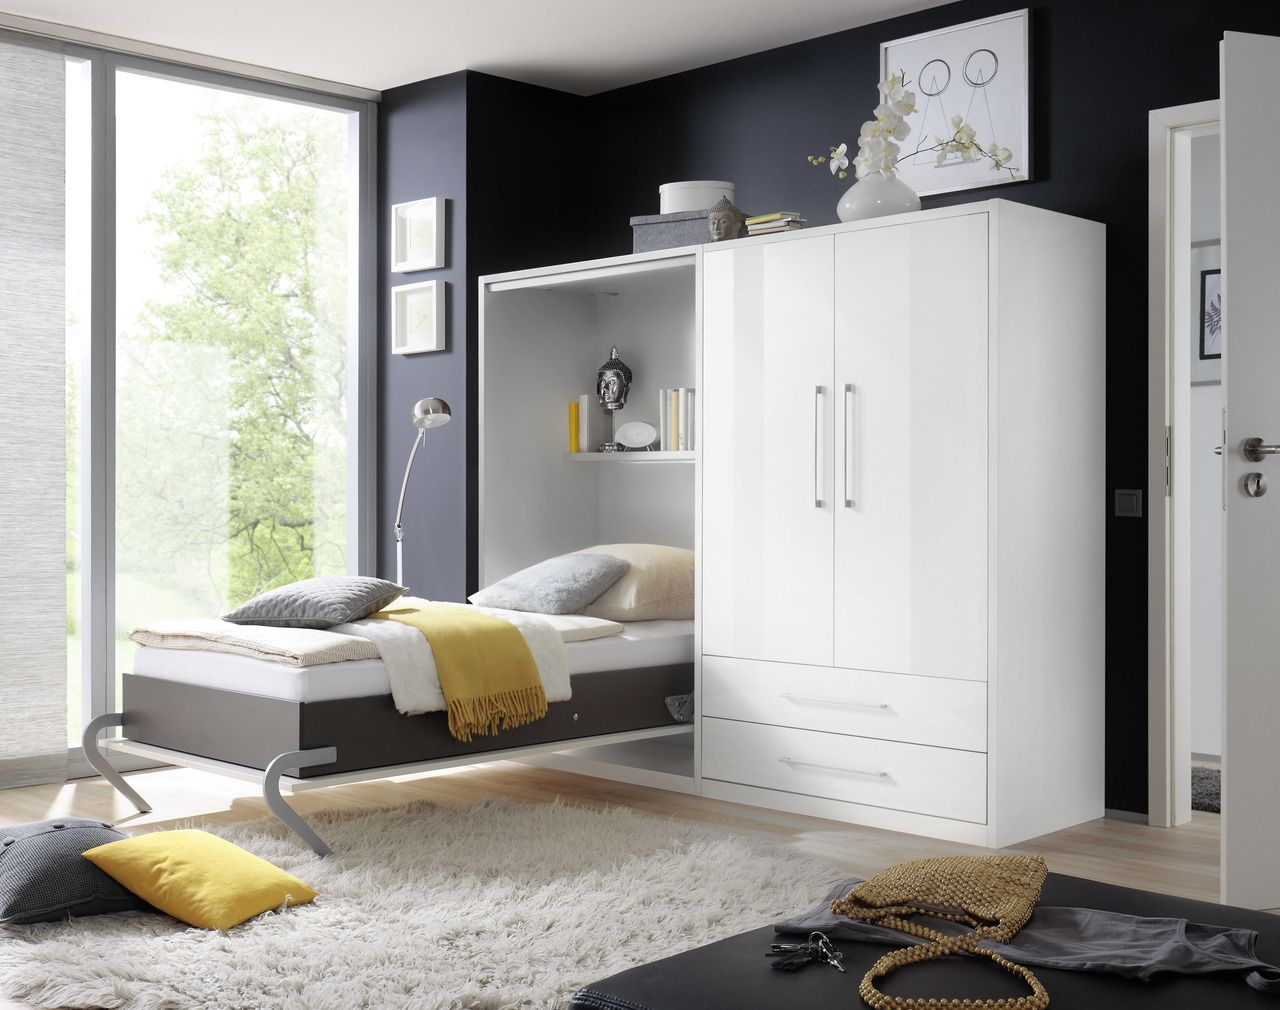 Klappbett Günstig Wand-klappbett 110 | Bed Price, Cabinet Bed, Home Decor